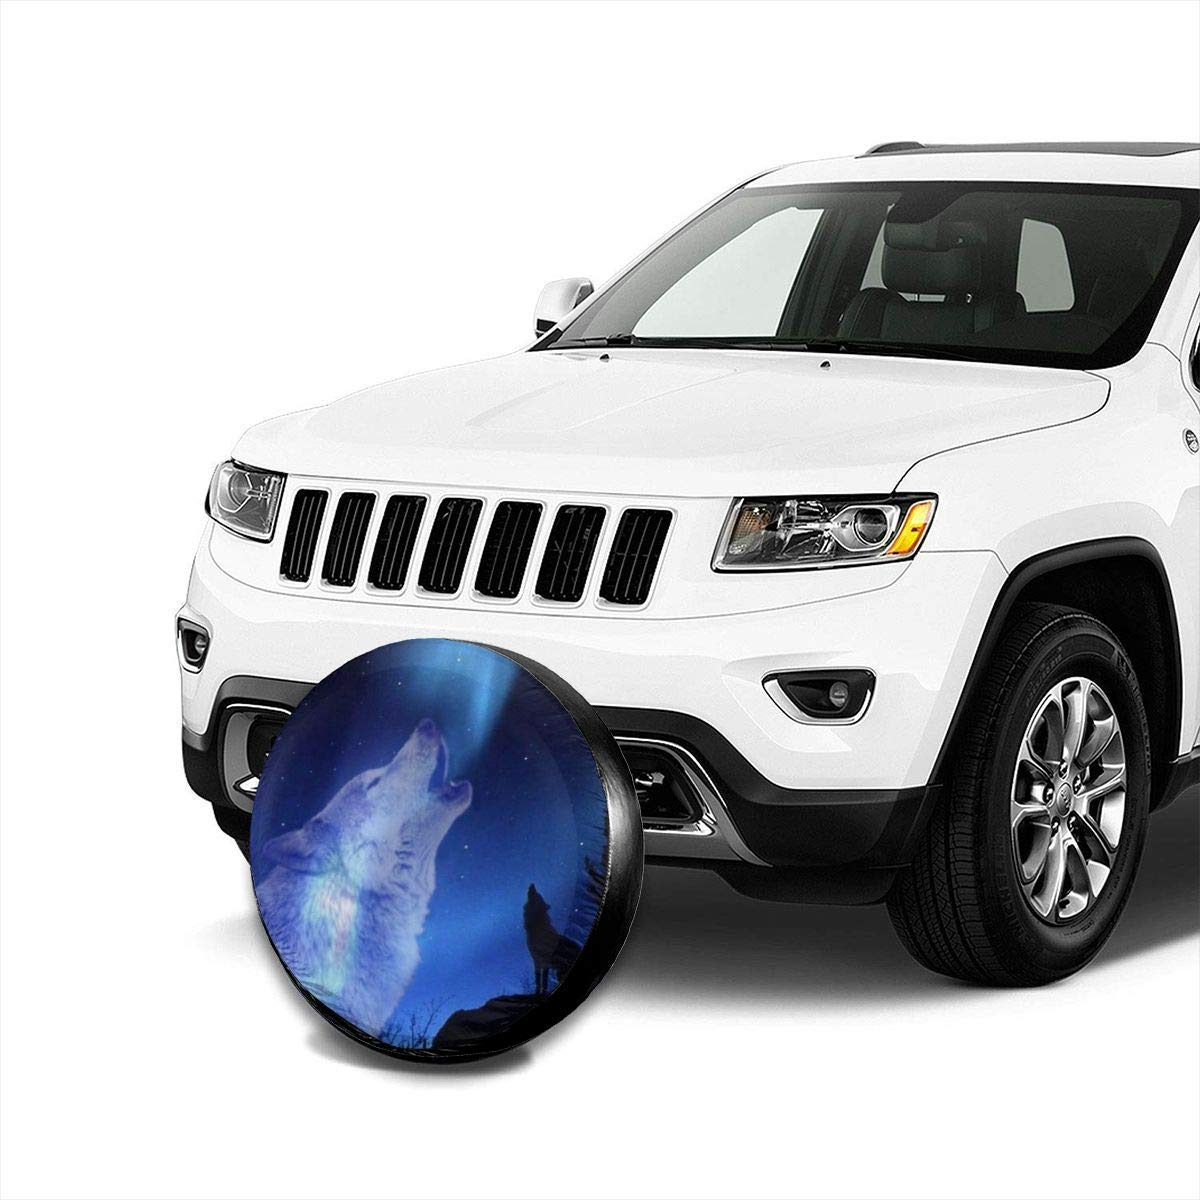 Howling Wolf Spare Tire Cover Wheel Cover Dust-Proof Waterproof Tire Cover Protection for Trailer RV SUV Truck Camper Travel 14 15 16 17